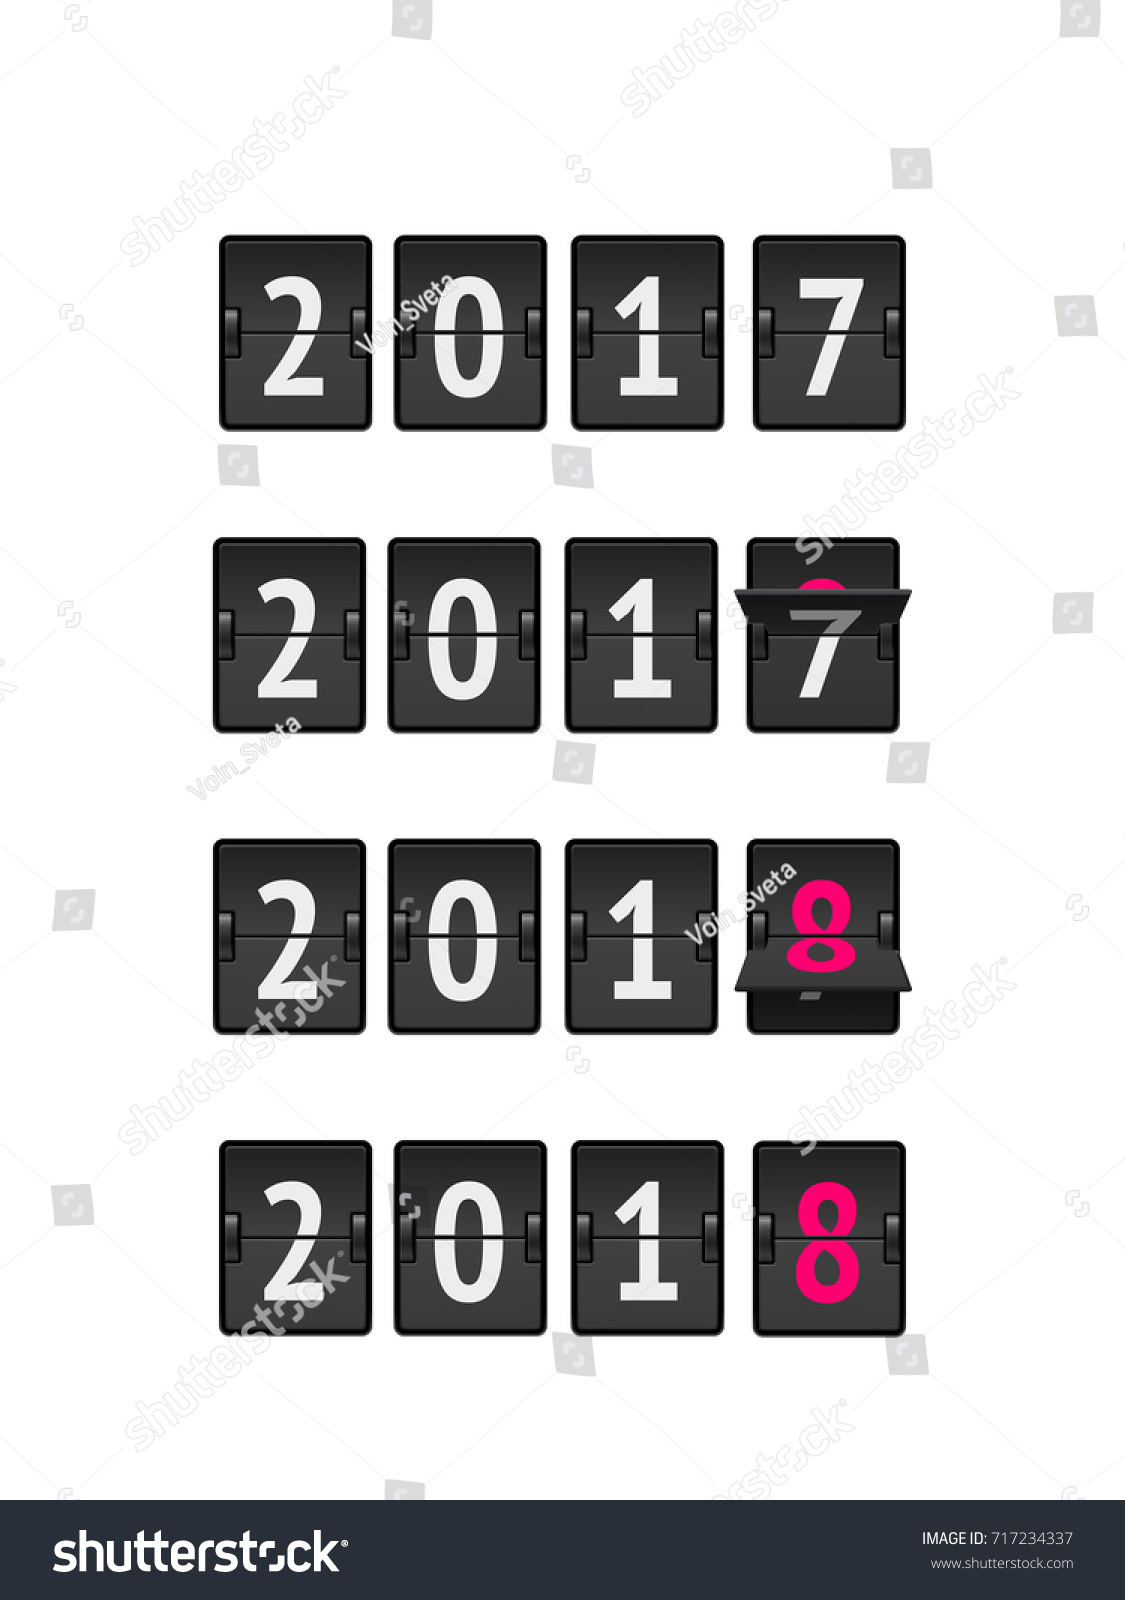 new year concept analog countdown from 2017 to 2018 year isolated on white background